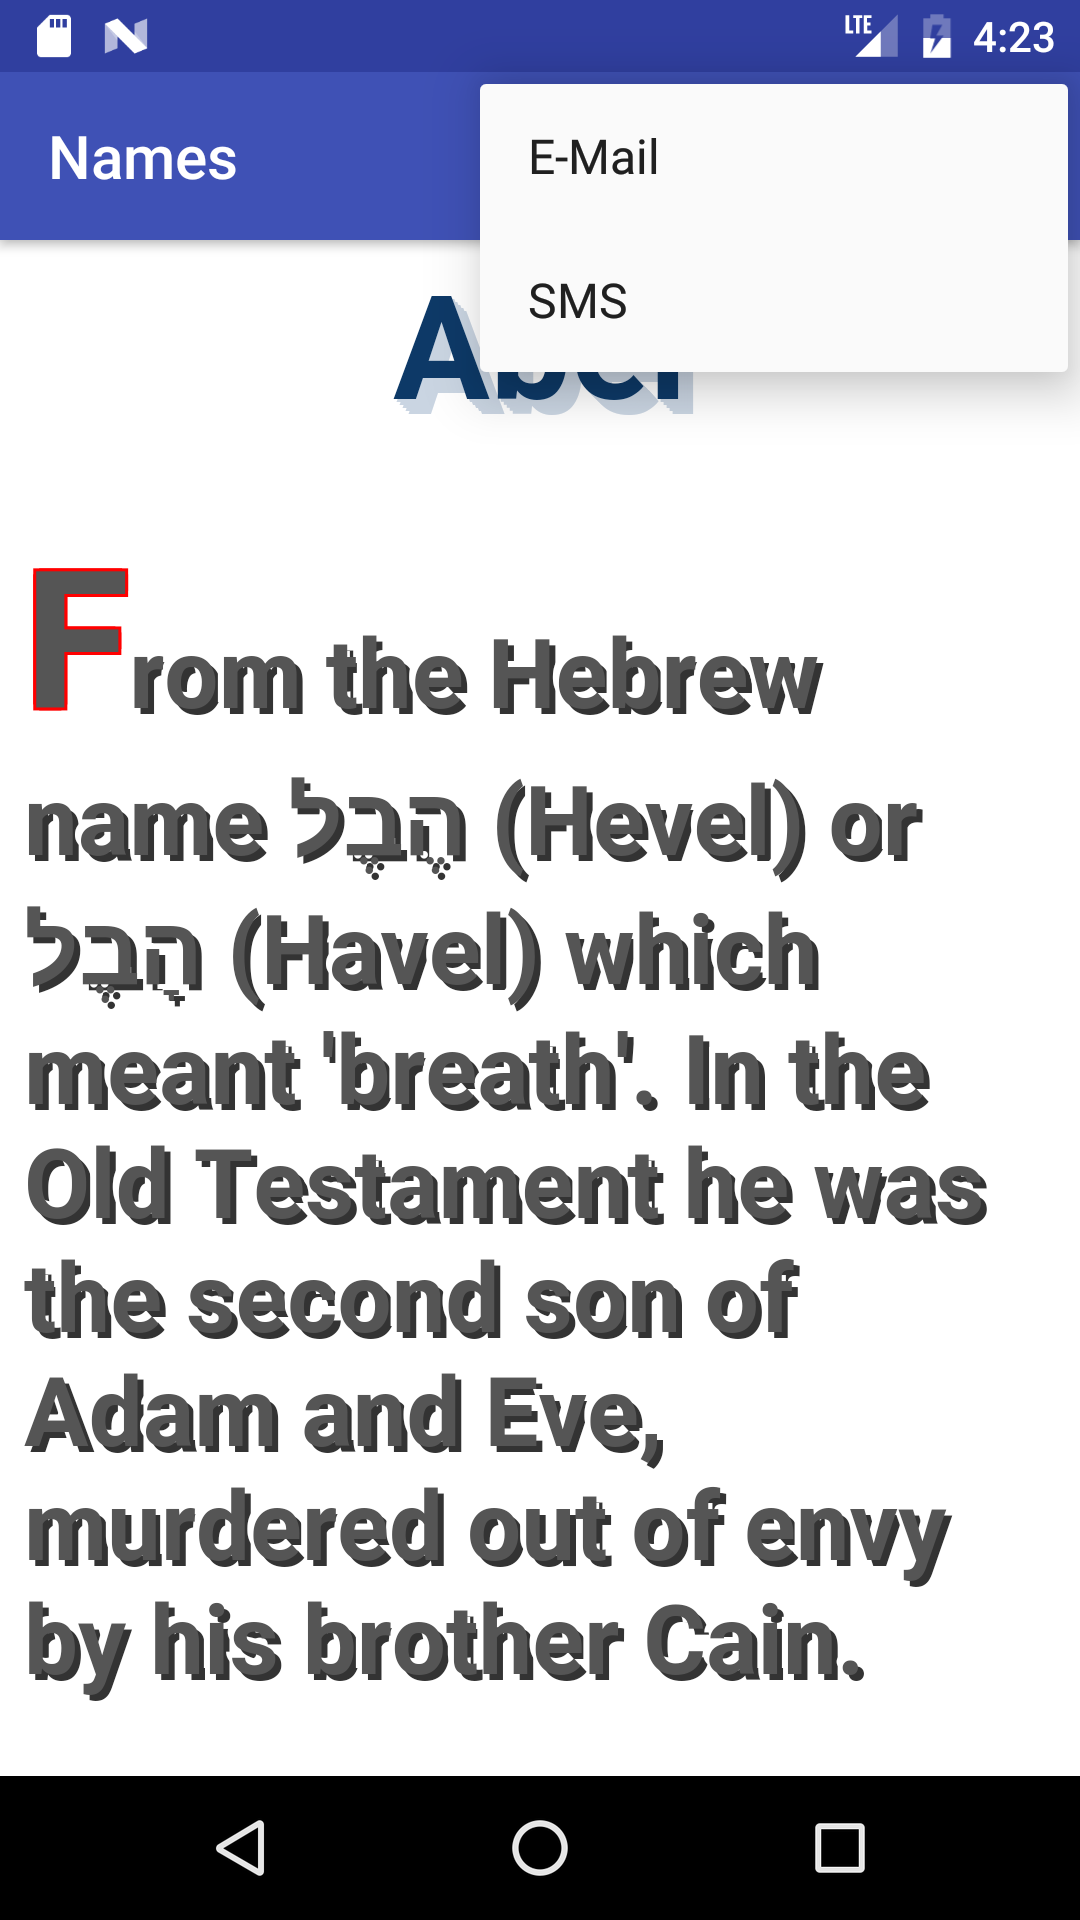 Meaning and origin of the name